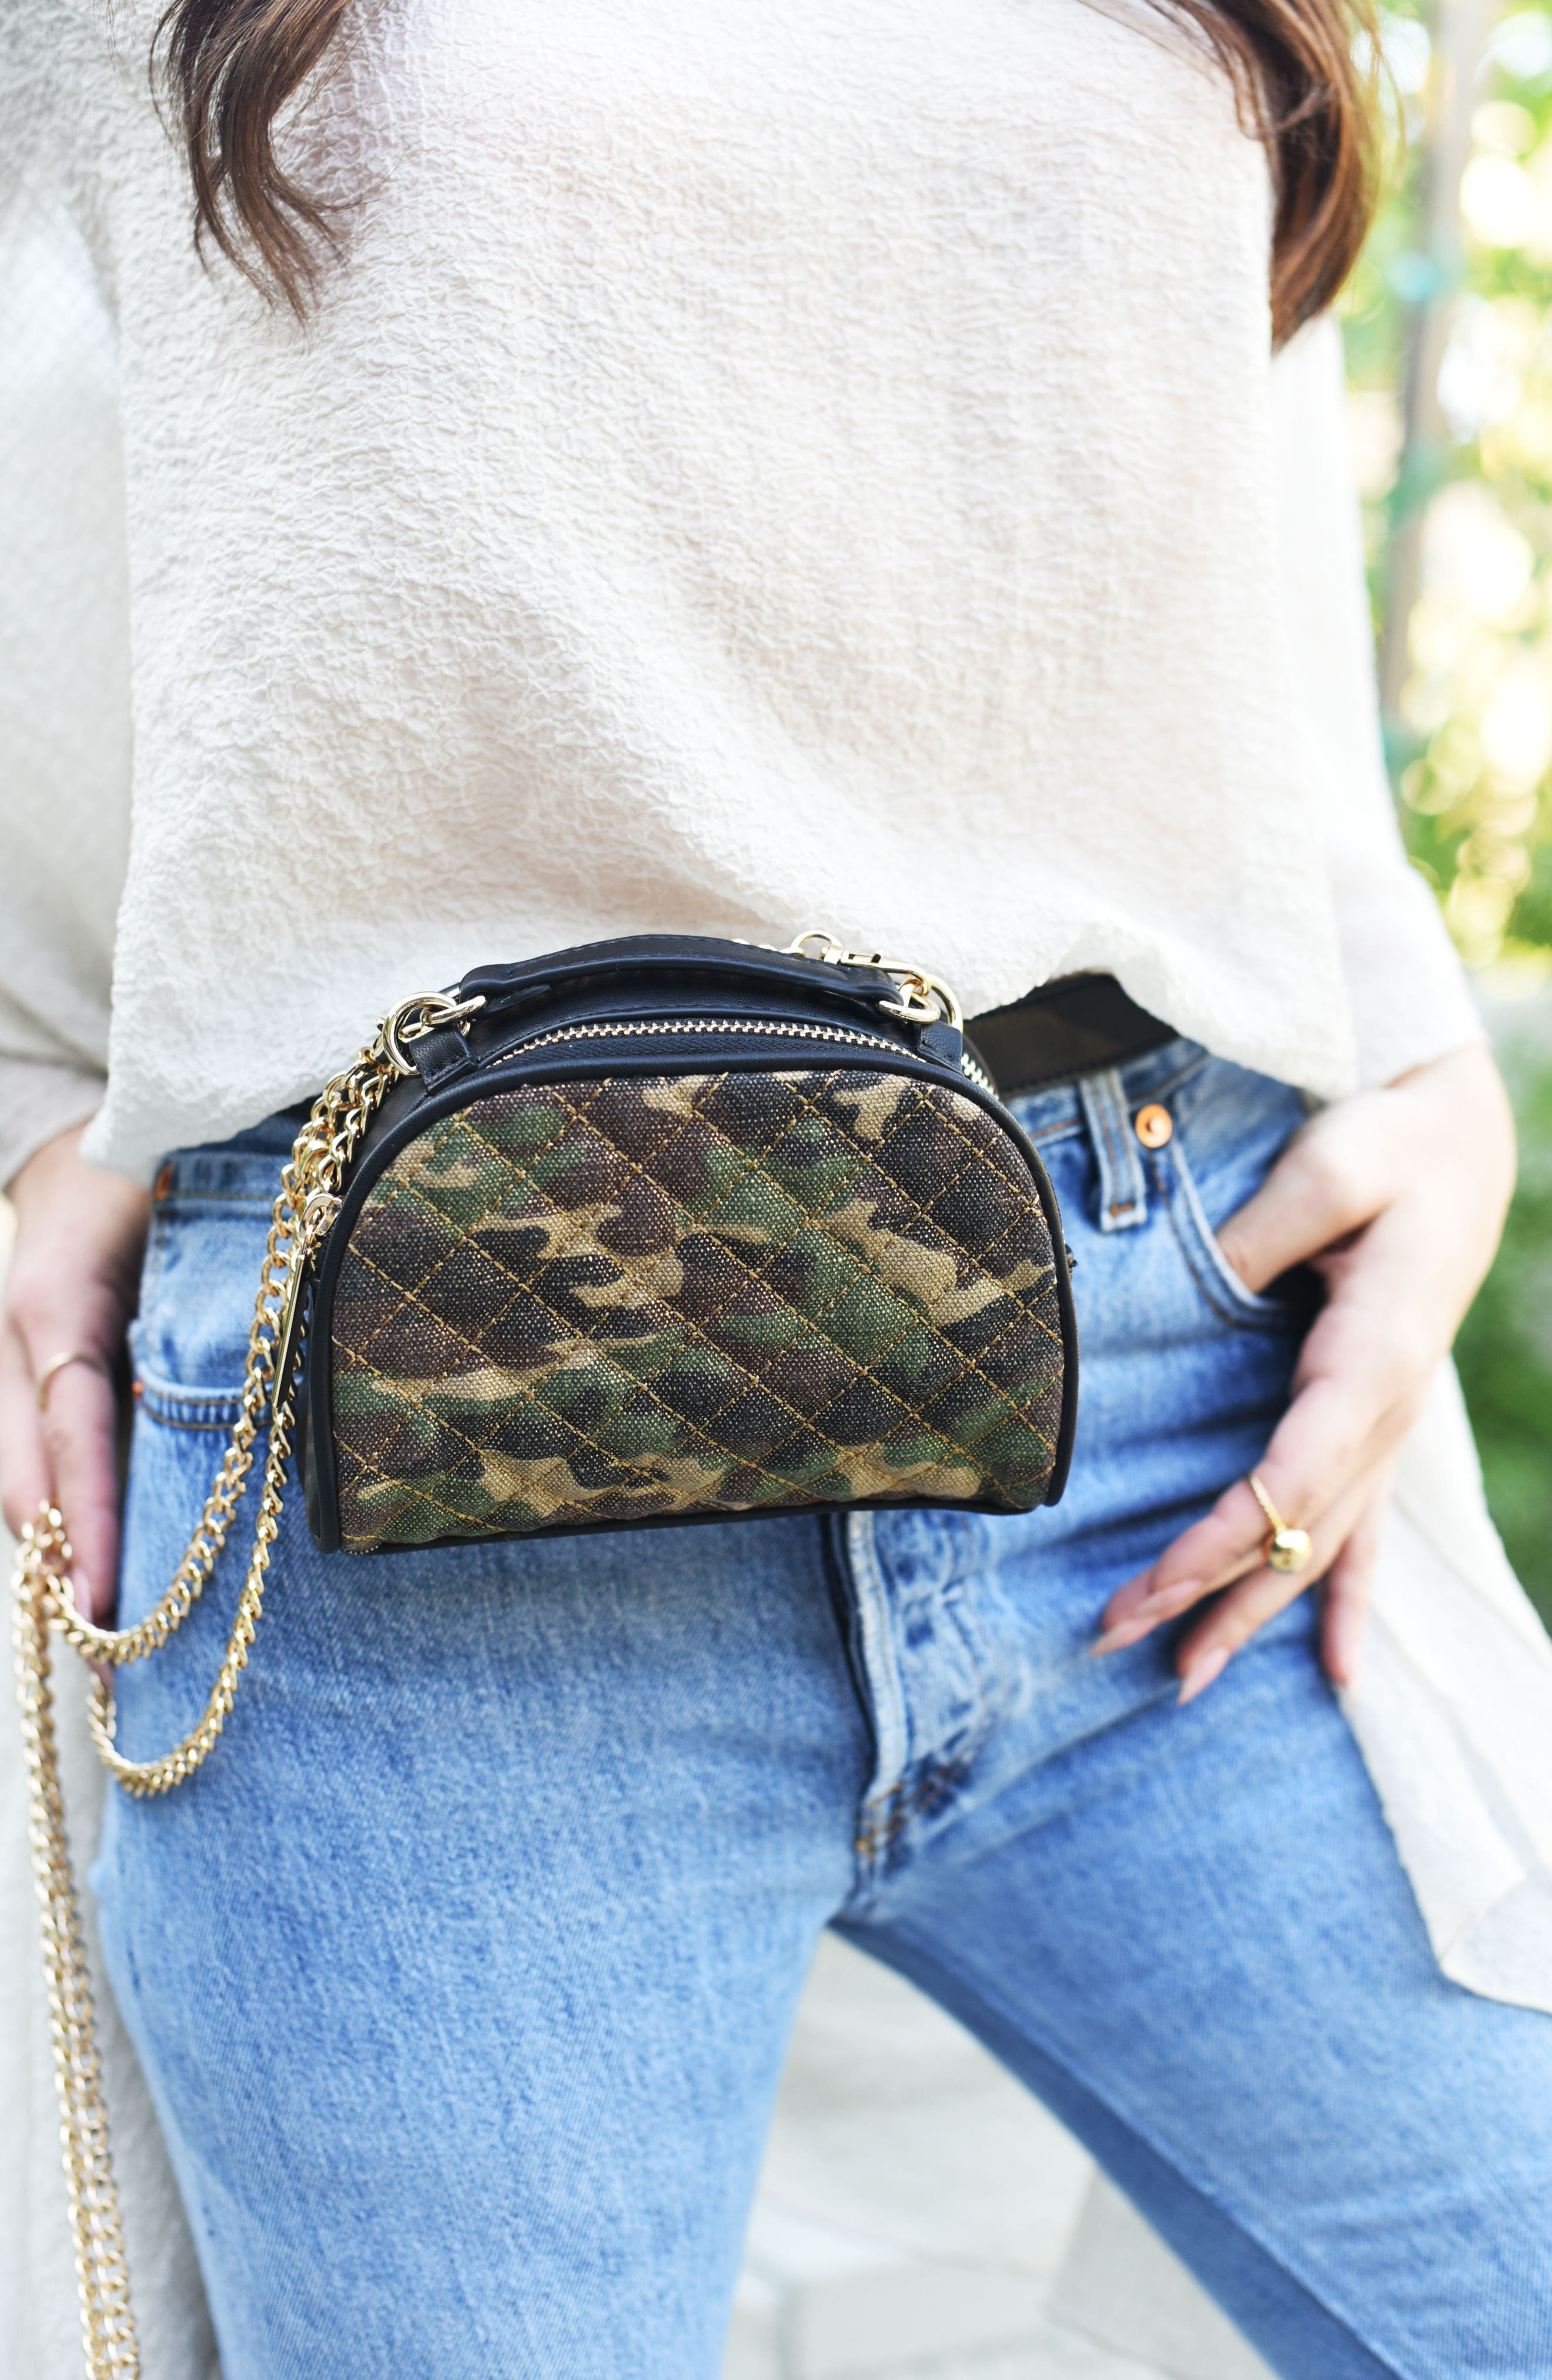 Mali + Lili Quilted Camouflage Belt Bag,                             Alternate thumbnail 2, color,